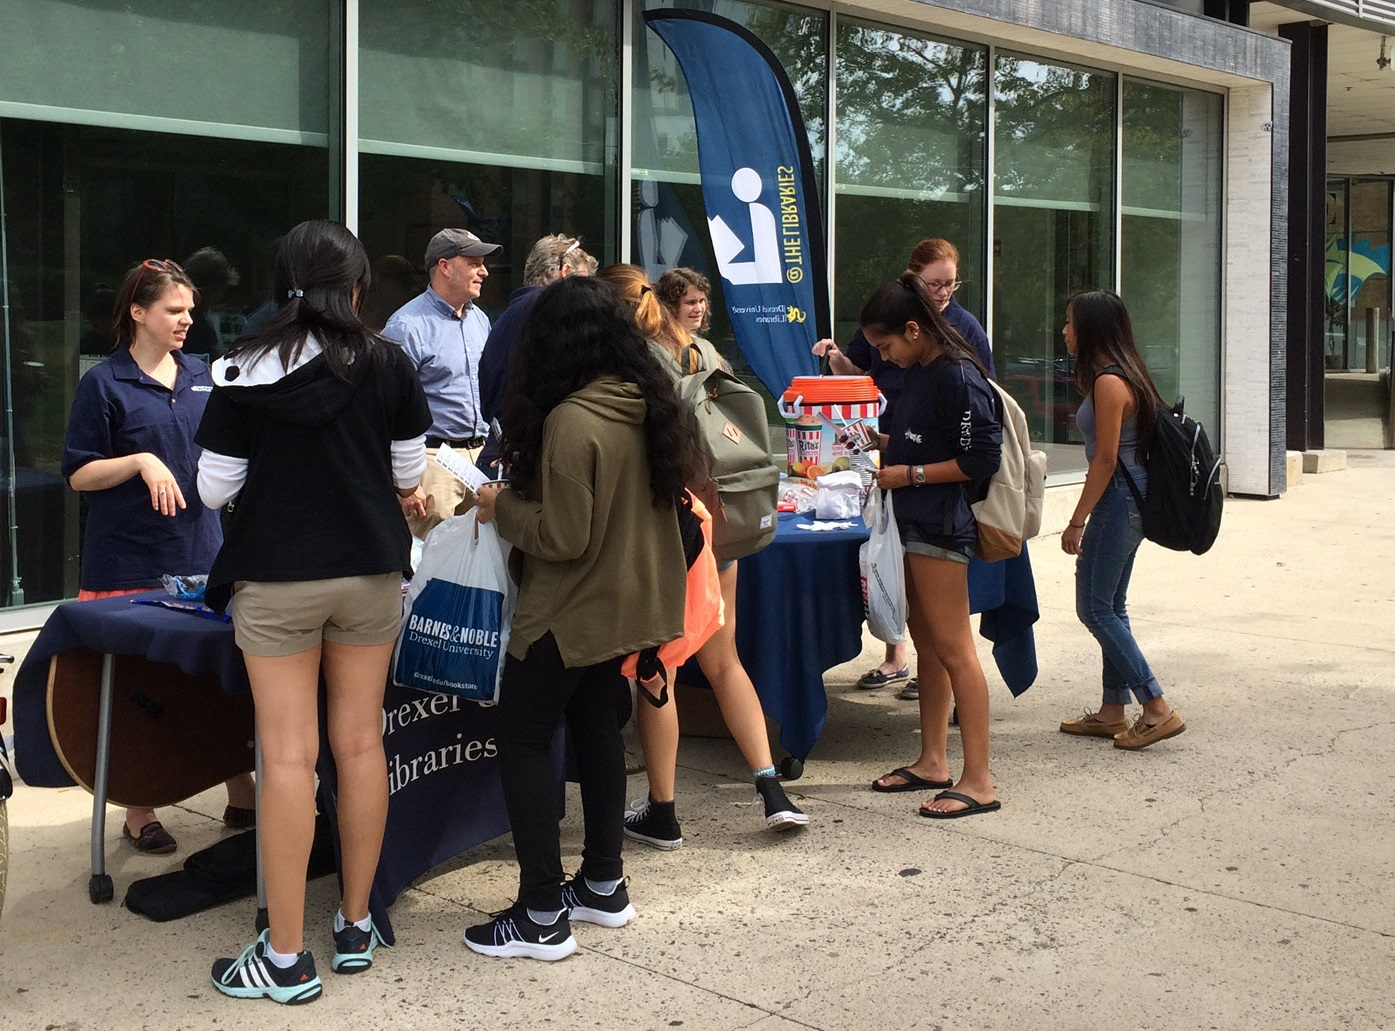 Drexel students wait in line for water ice in front of the Library Learning Terrace